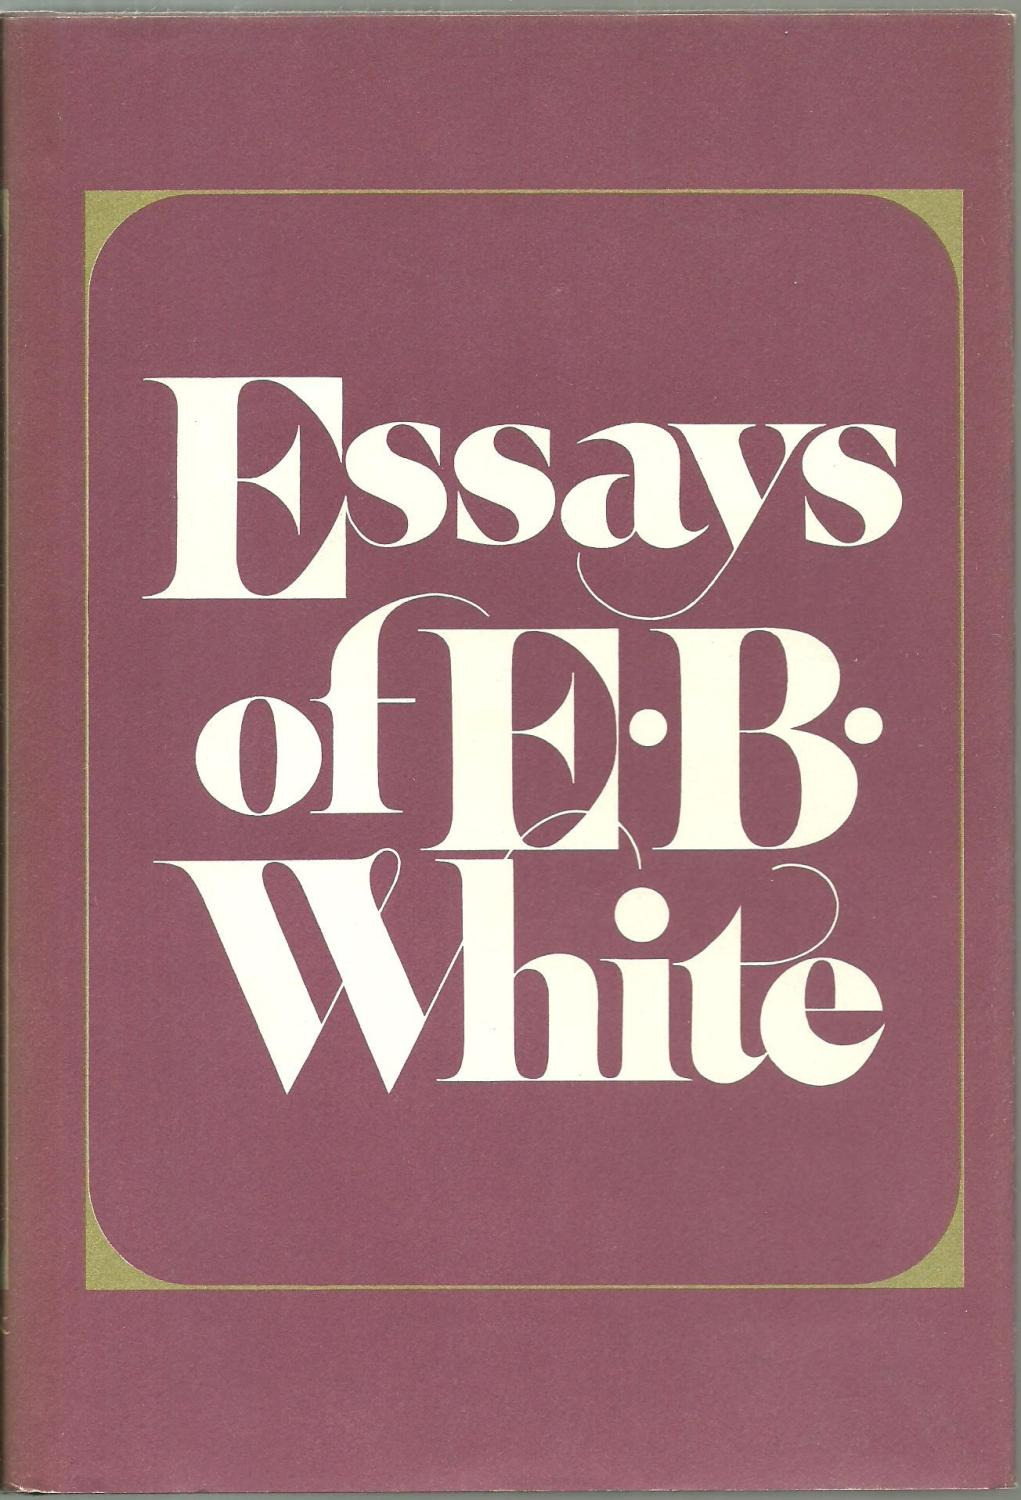 007 Essays Of White Essay Impressive Eb Table Contents Analysis White's Once More To The Lake Full